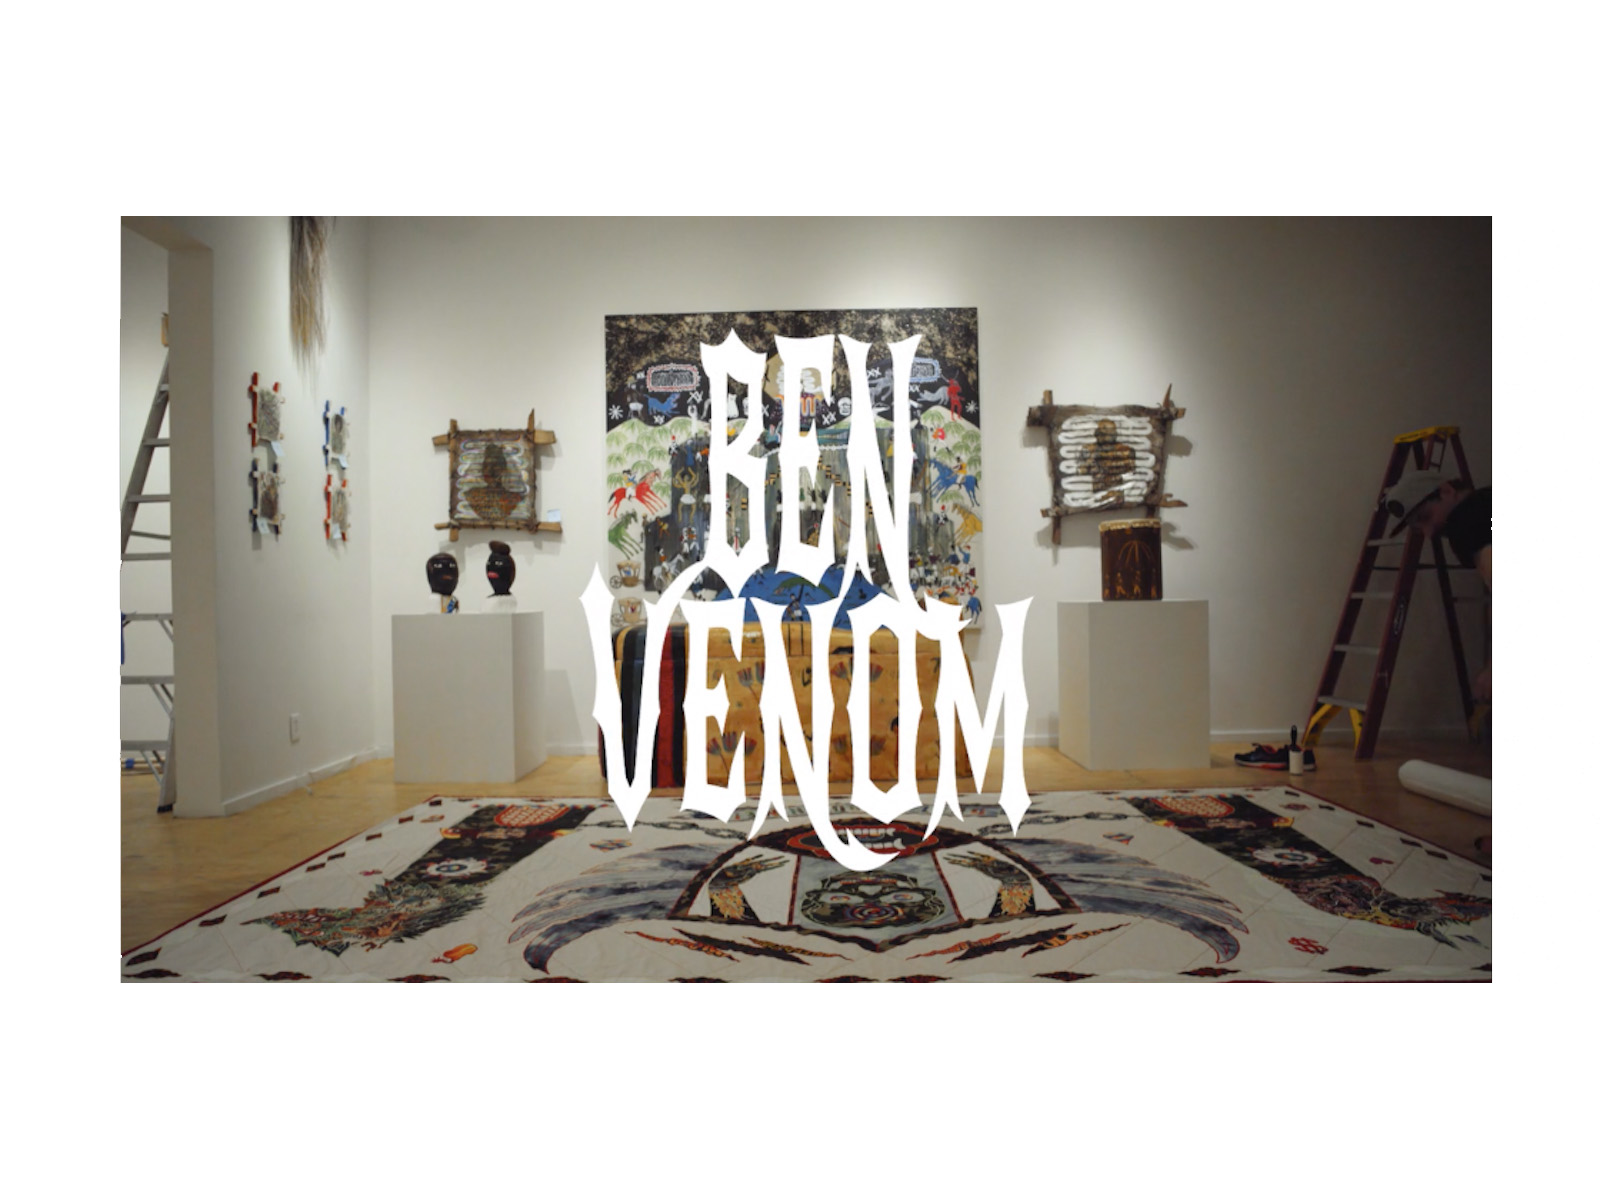 DIY METAL QUILTING by BEN VENOM